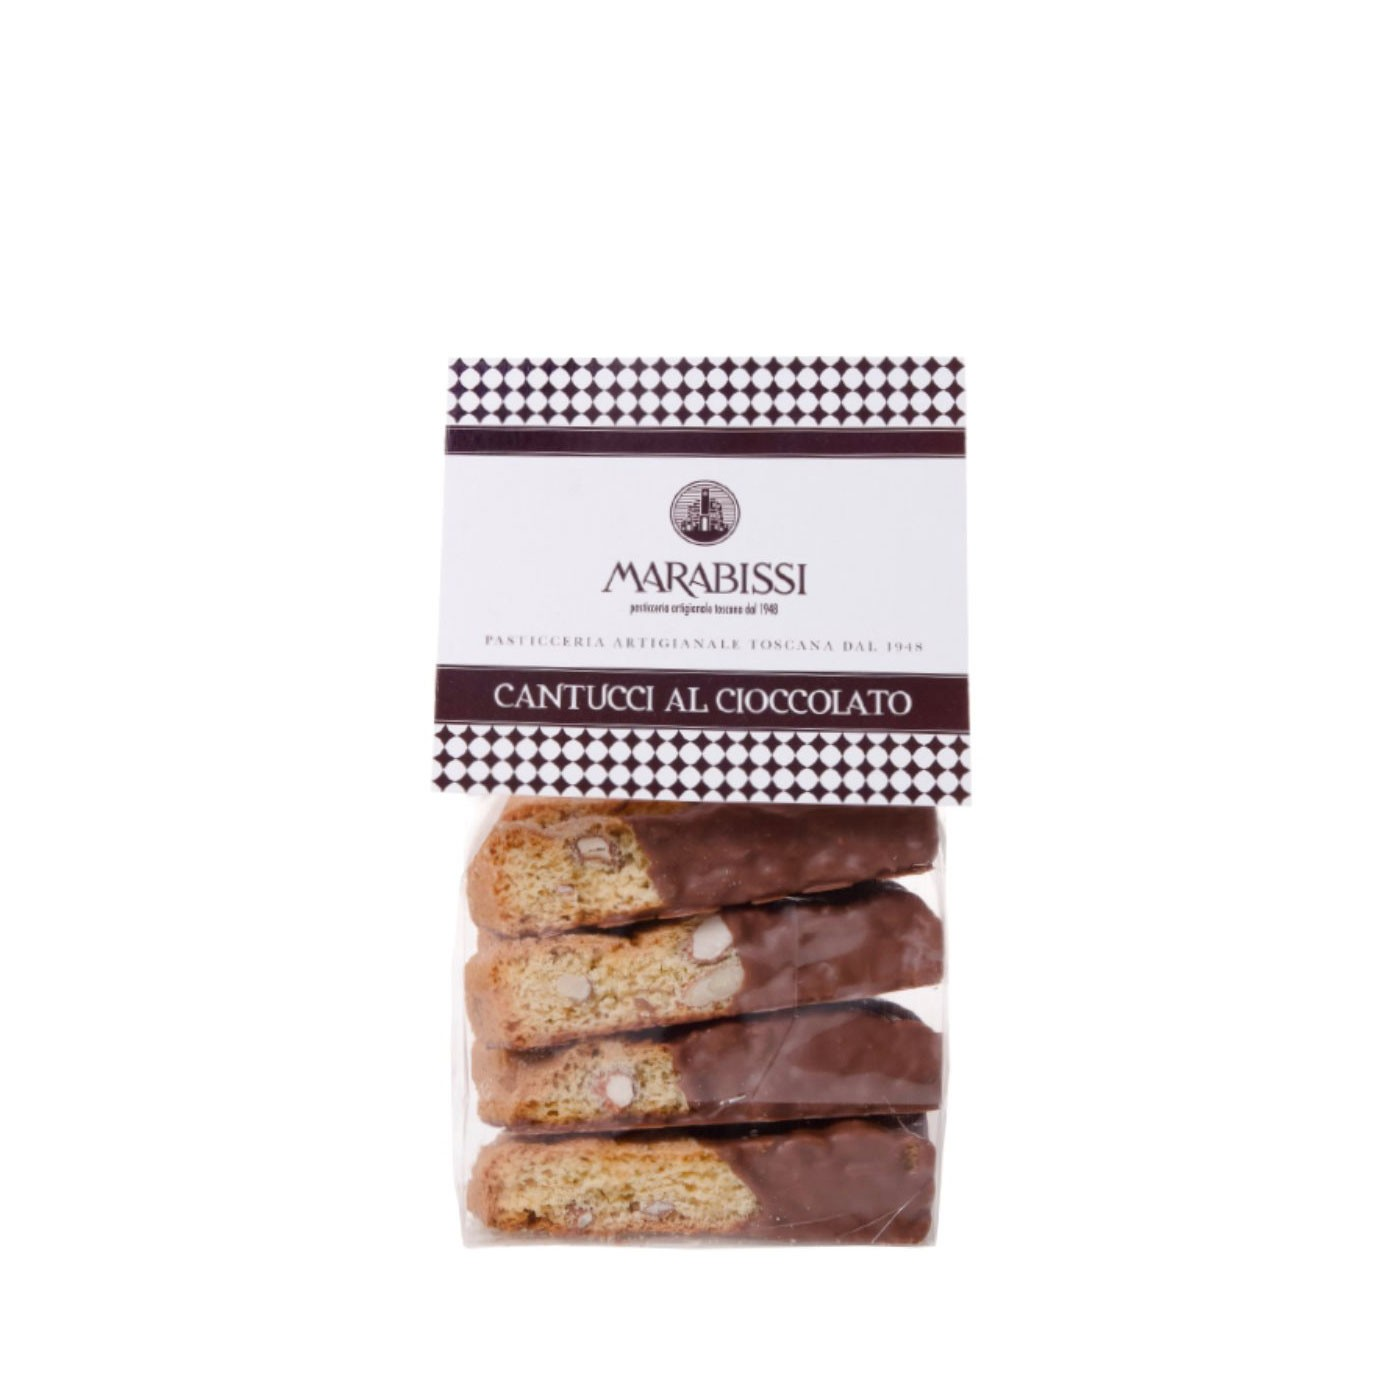 Chocolate Covered Cantucci Cookies 5.3 oz